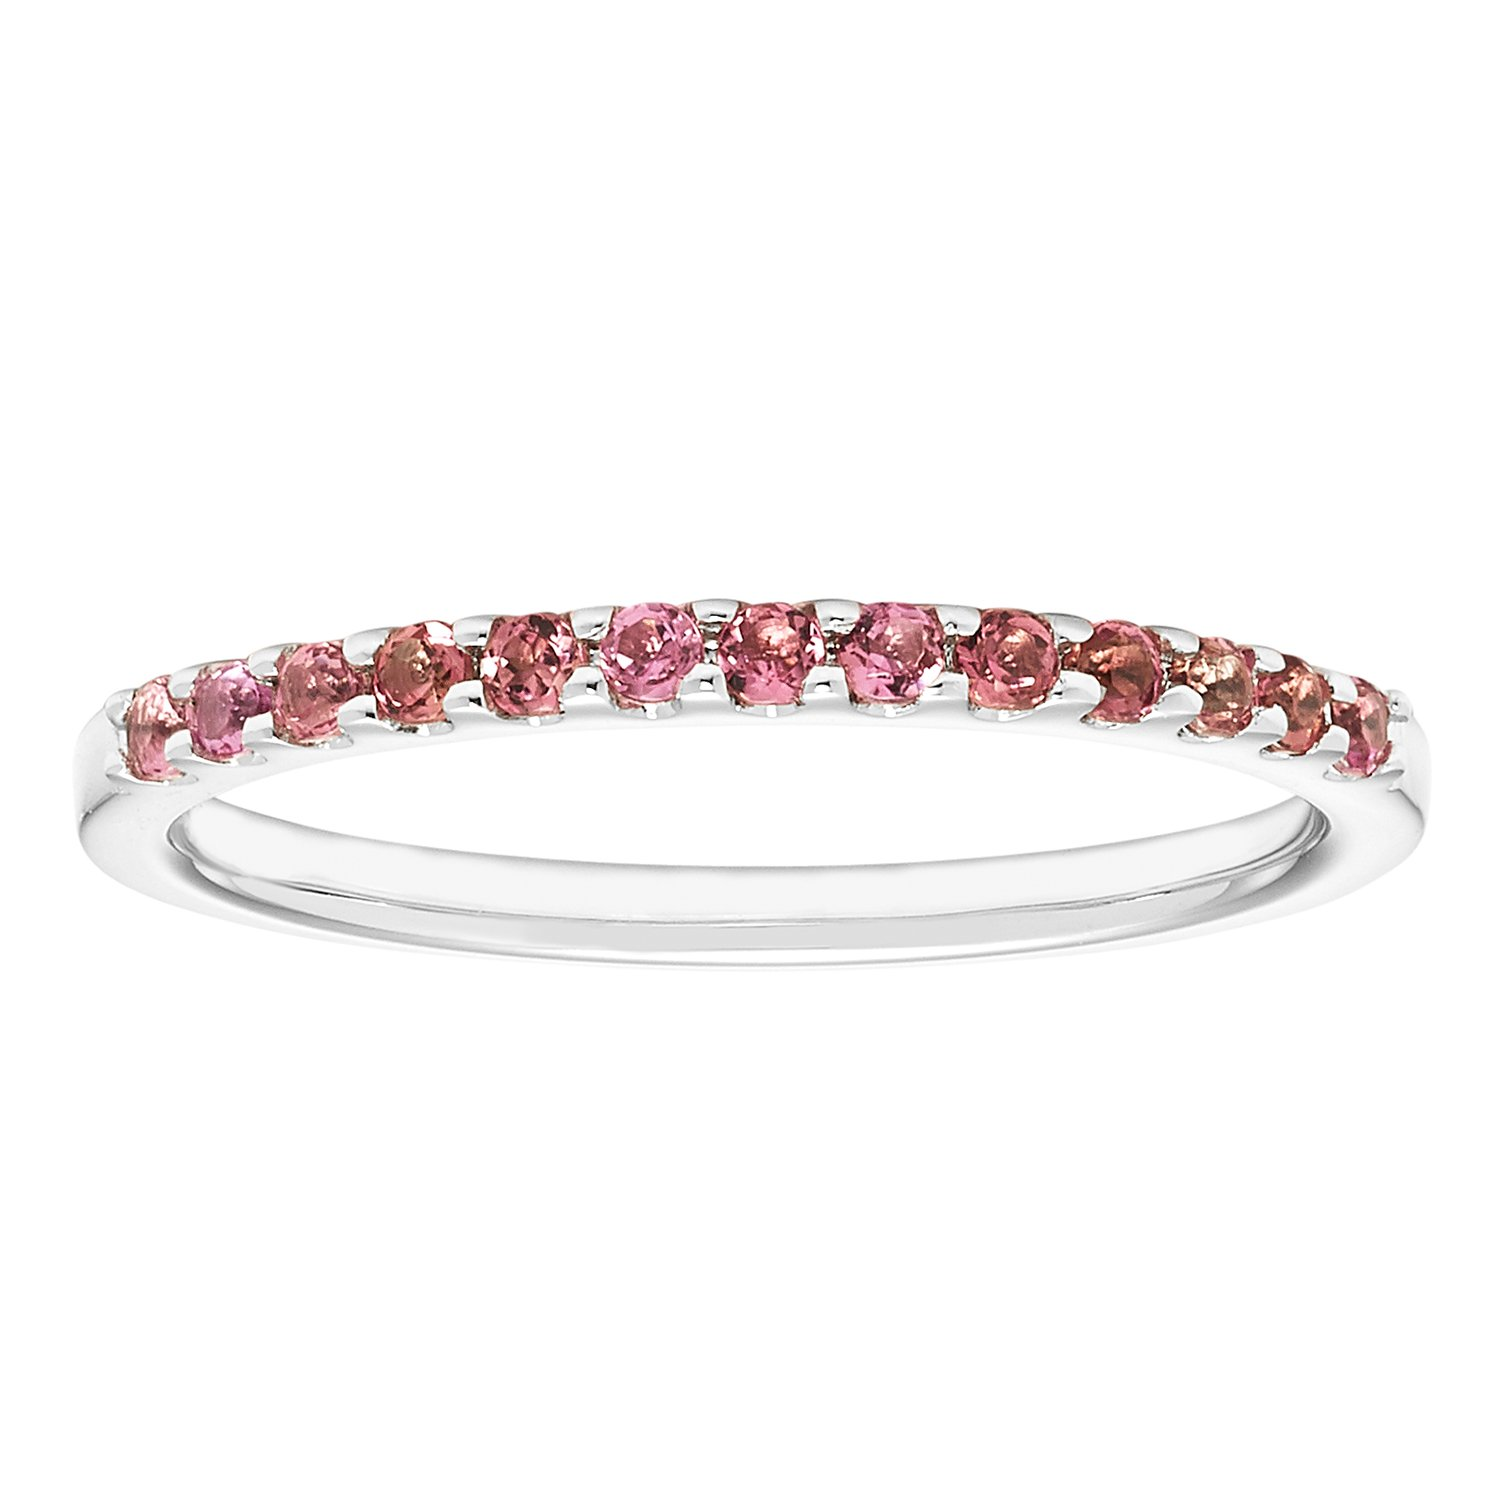 14K White Gold 1.04 Tgw. Pink Tourmaline October Birthstone Stackable 2MM Band Ring